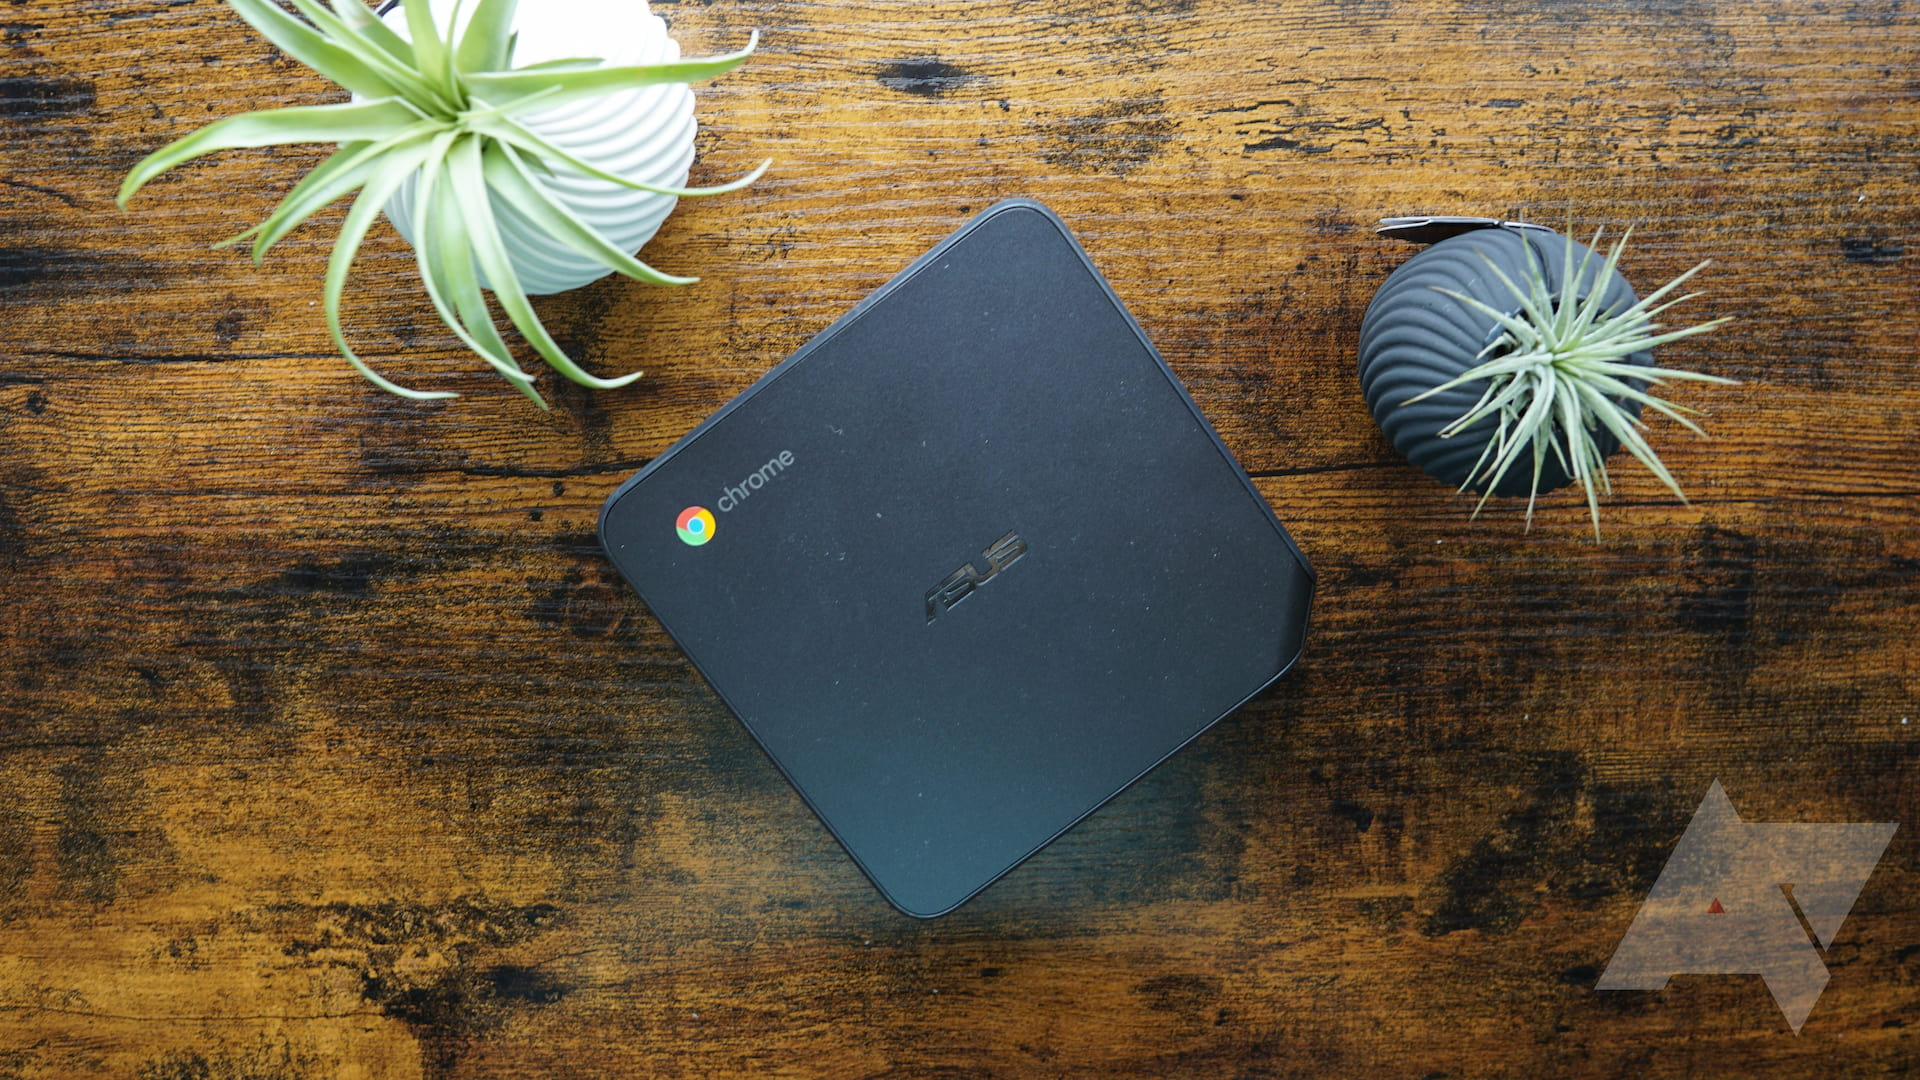 asus_chromebox_4_twomonthslater